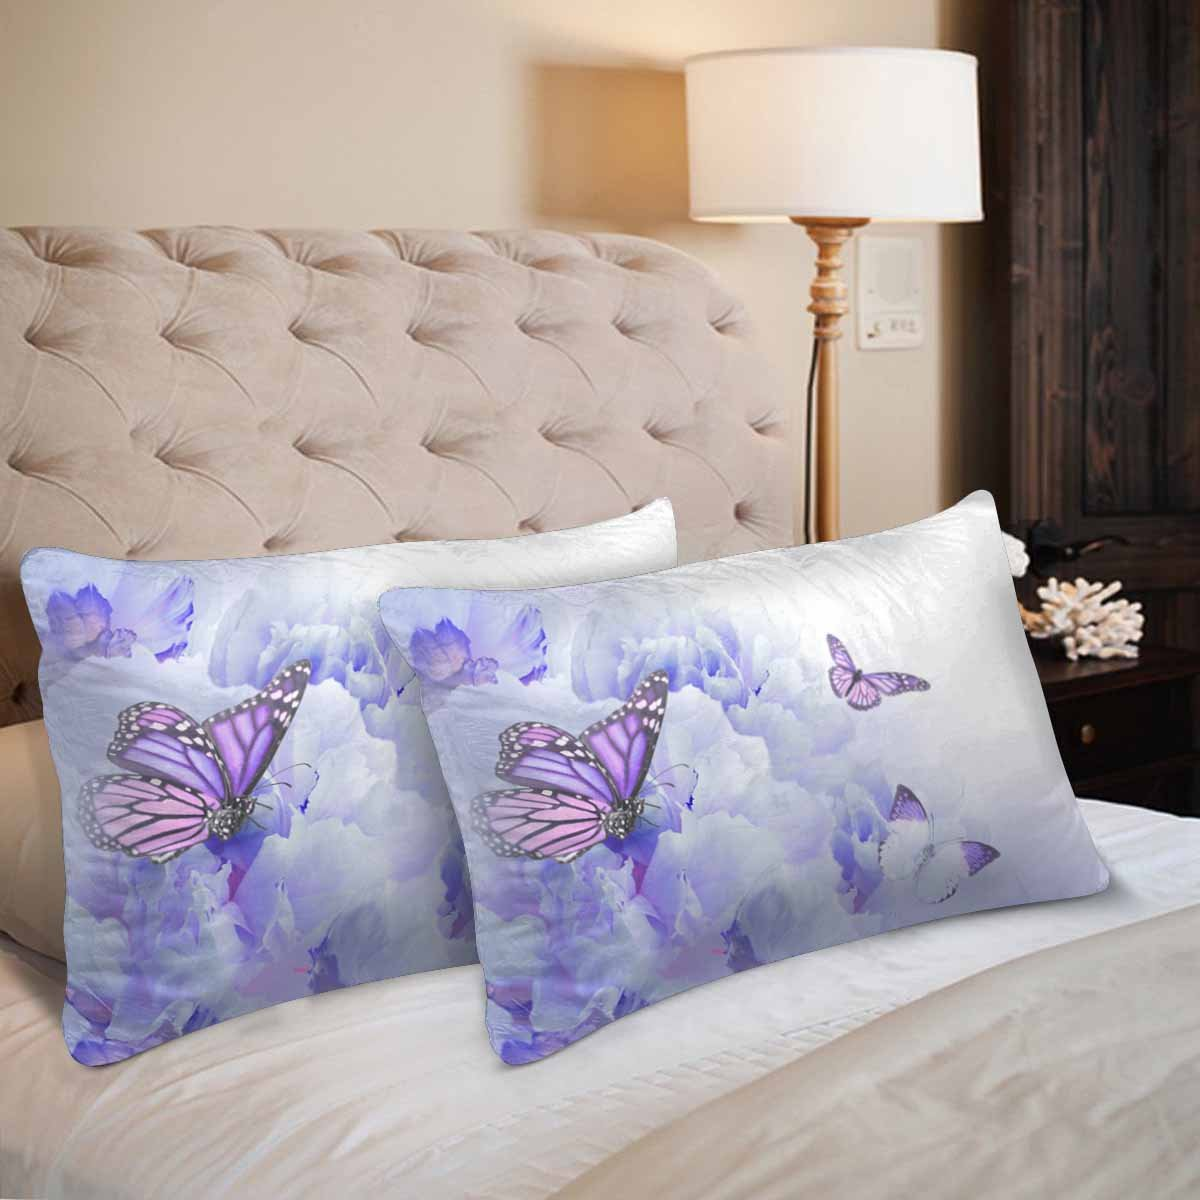 InterestPrint Floral Roses Butterfly Wild Flower Pillow Cases Pillowcase Queen Size 20x30 Set of 2 Rectangle Pillow Covers Protector for Home Couch Sofa Bedroom Decoration